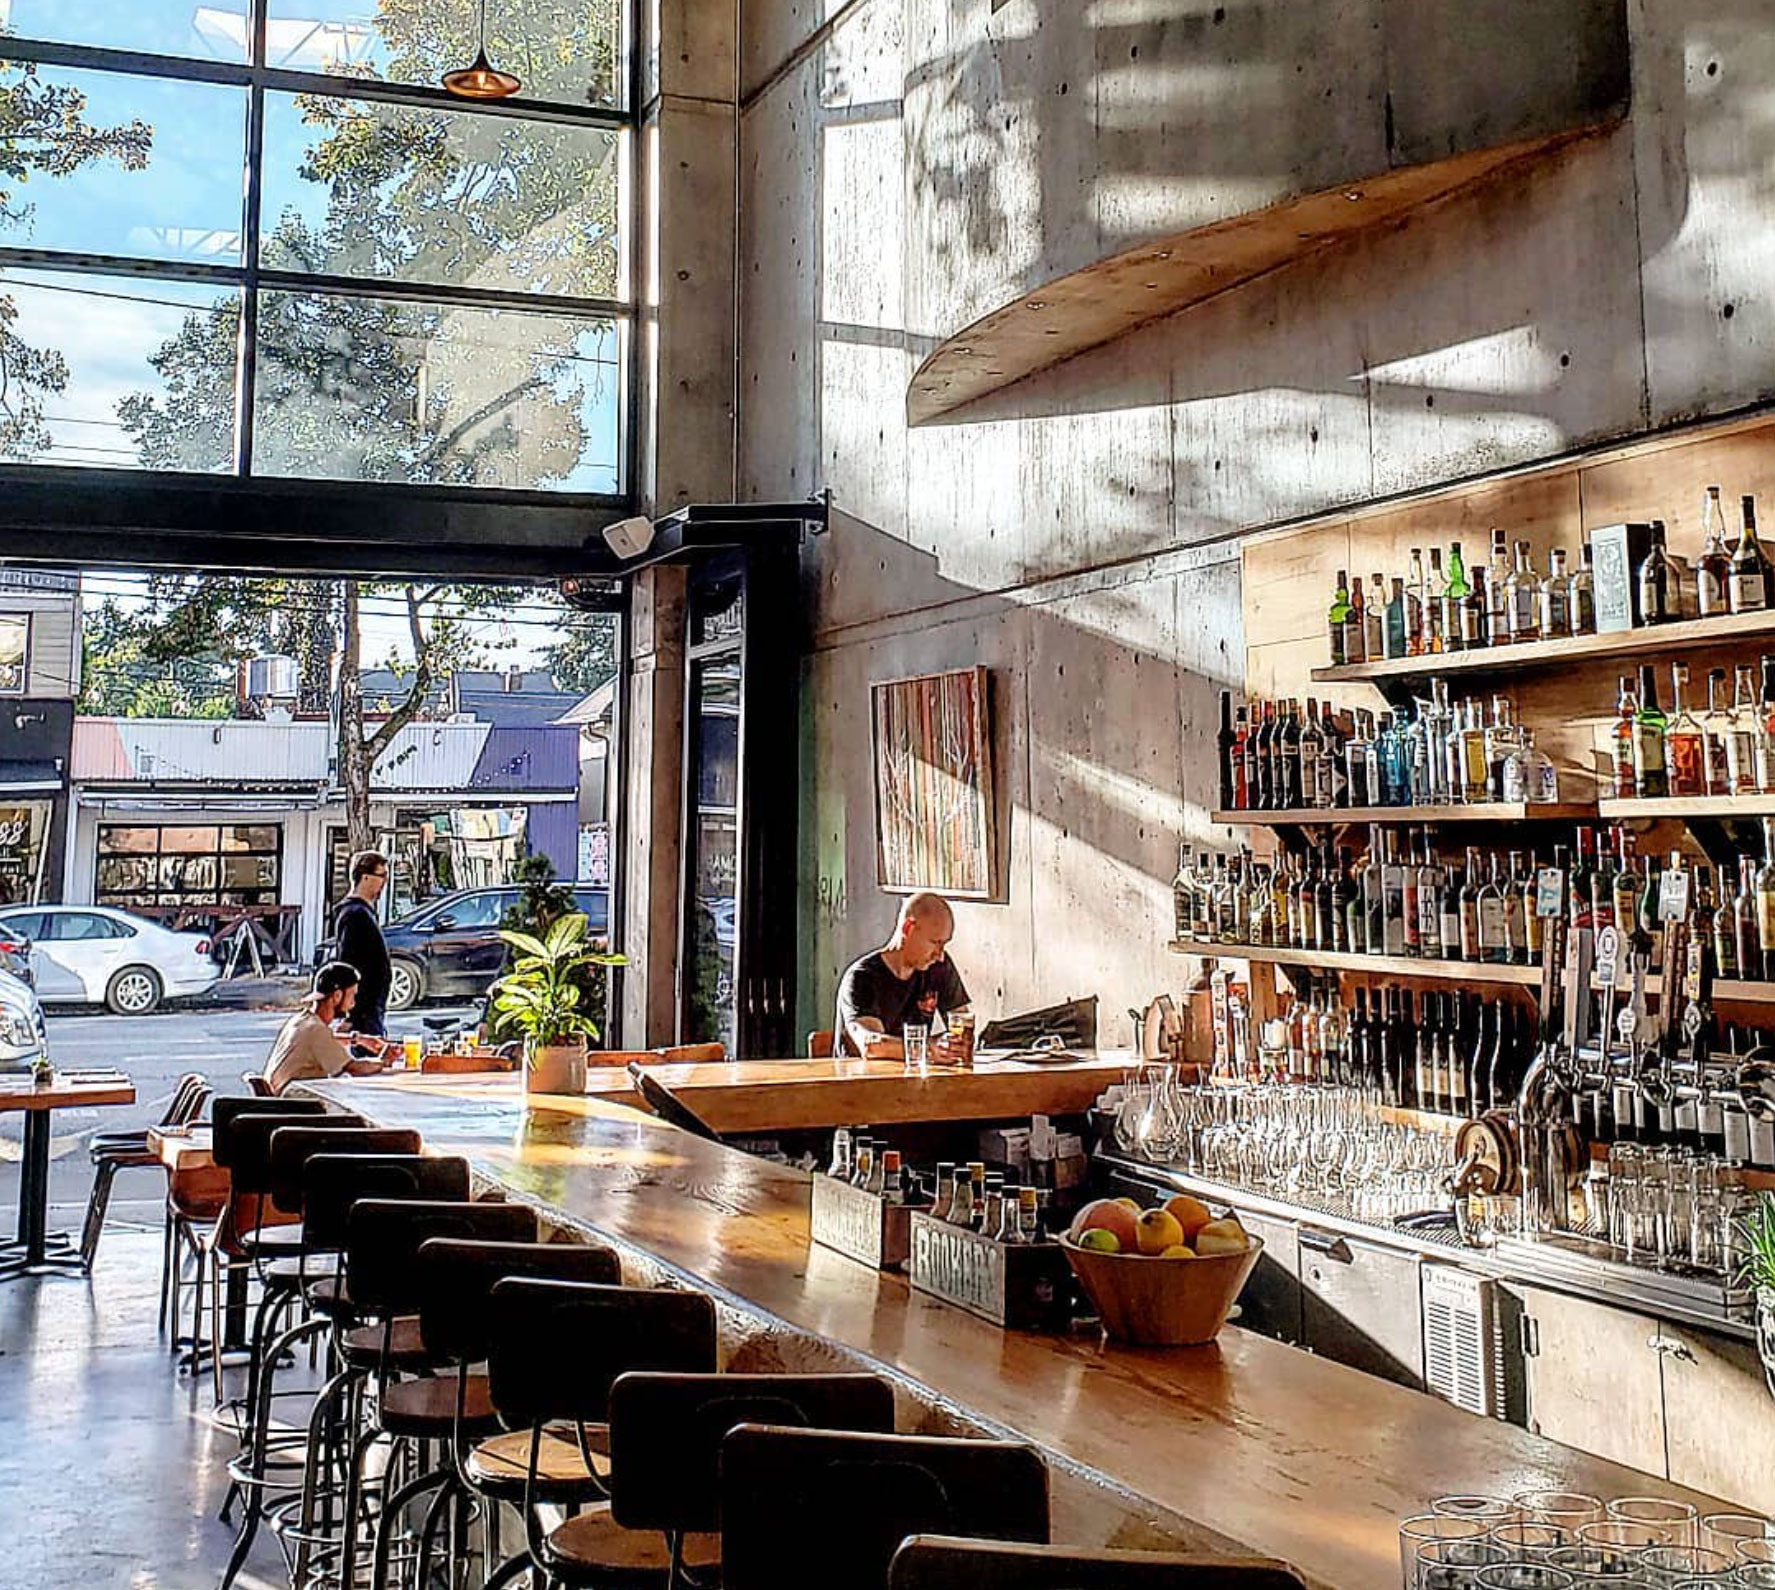 nomad restaurant on Main Street, vancouver is a participant in the put a cork in it cork recycling program